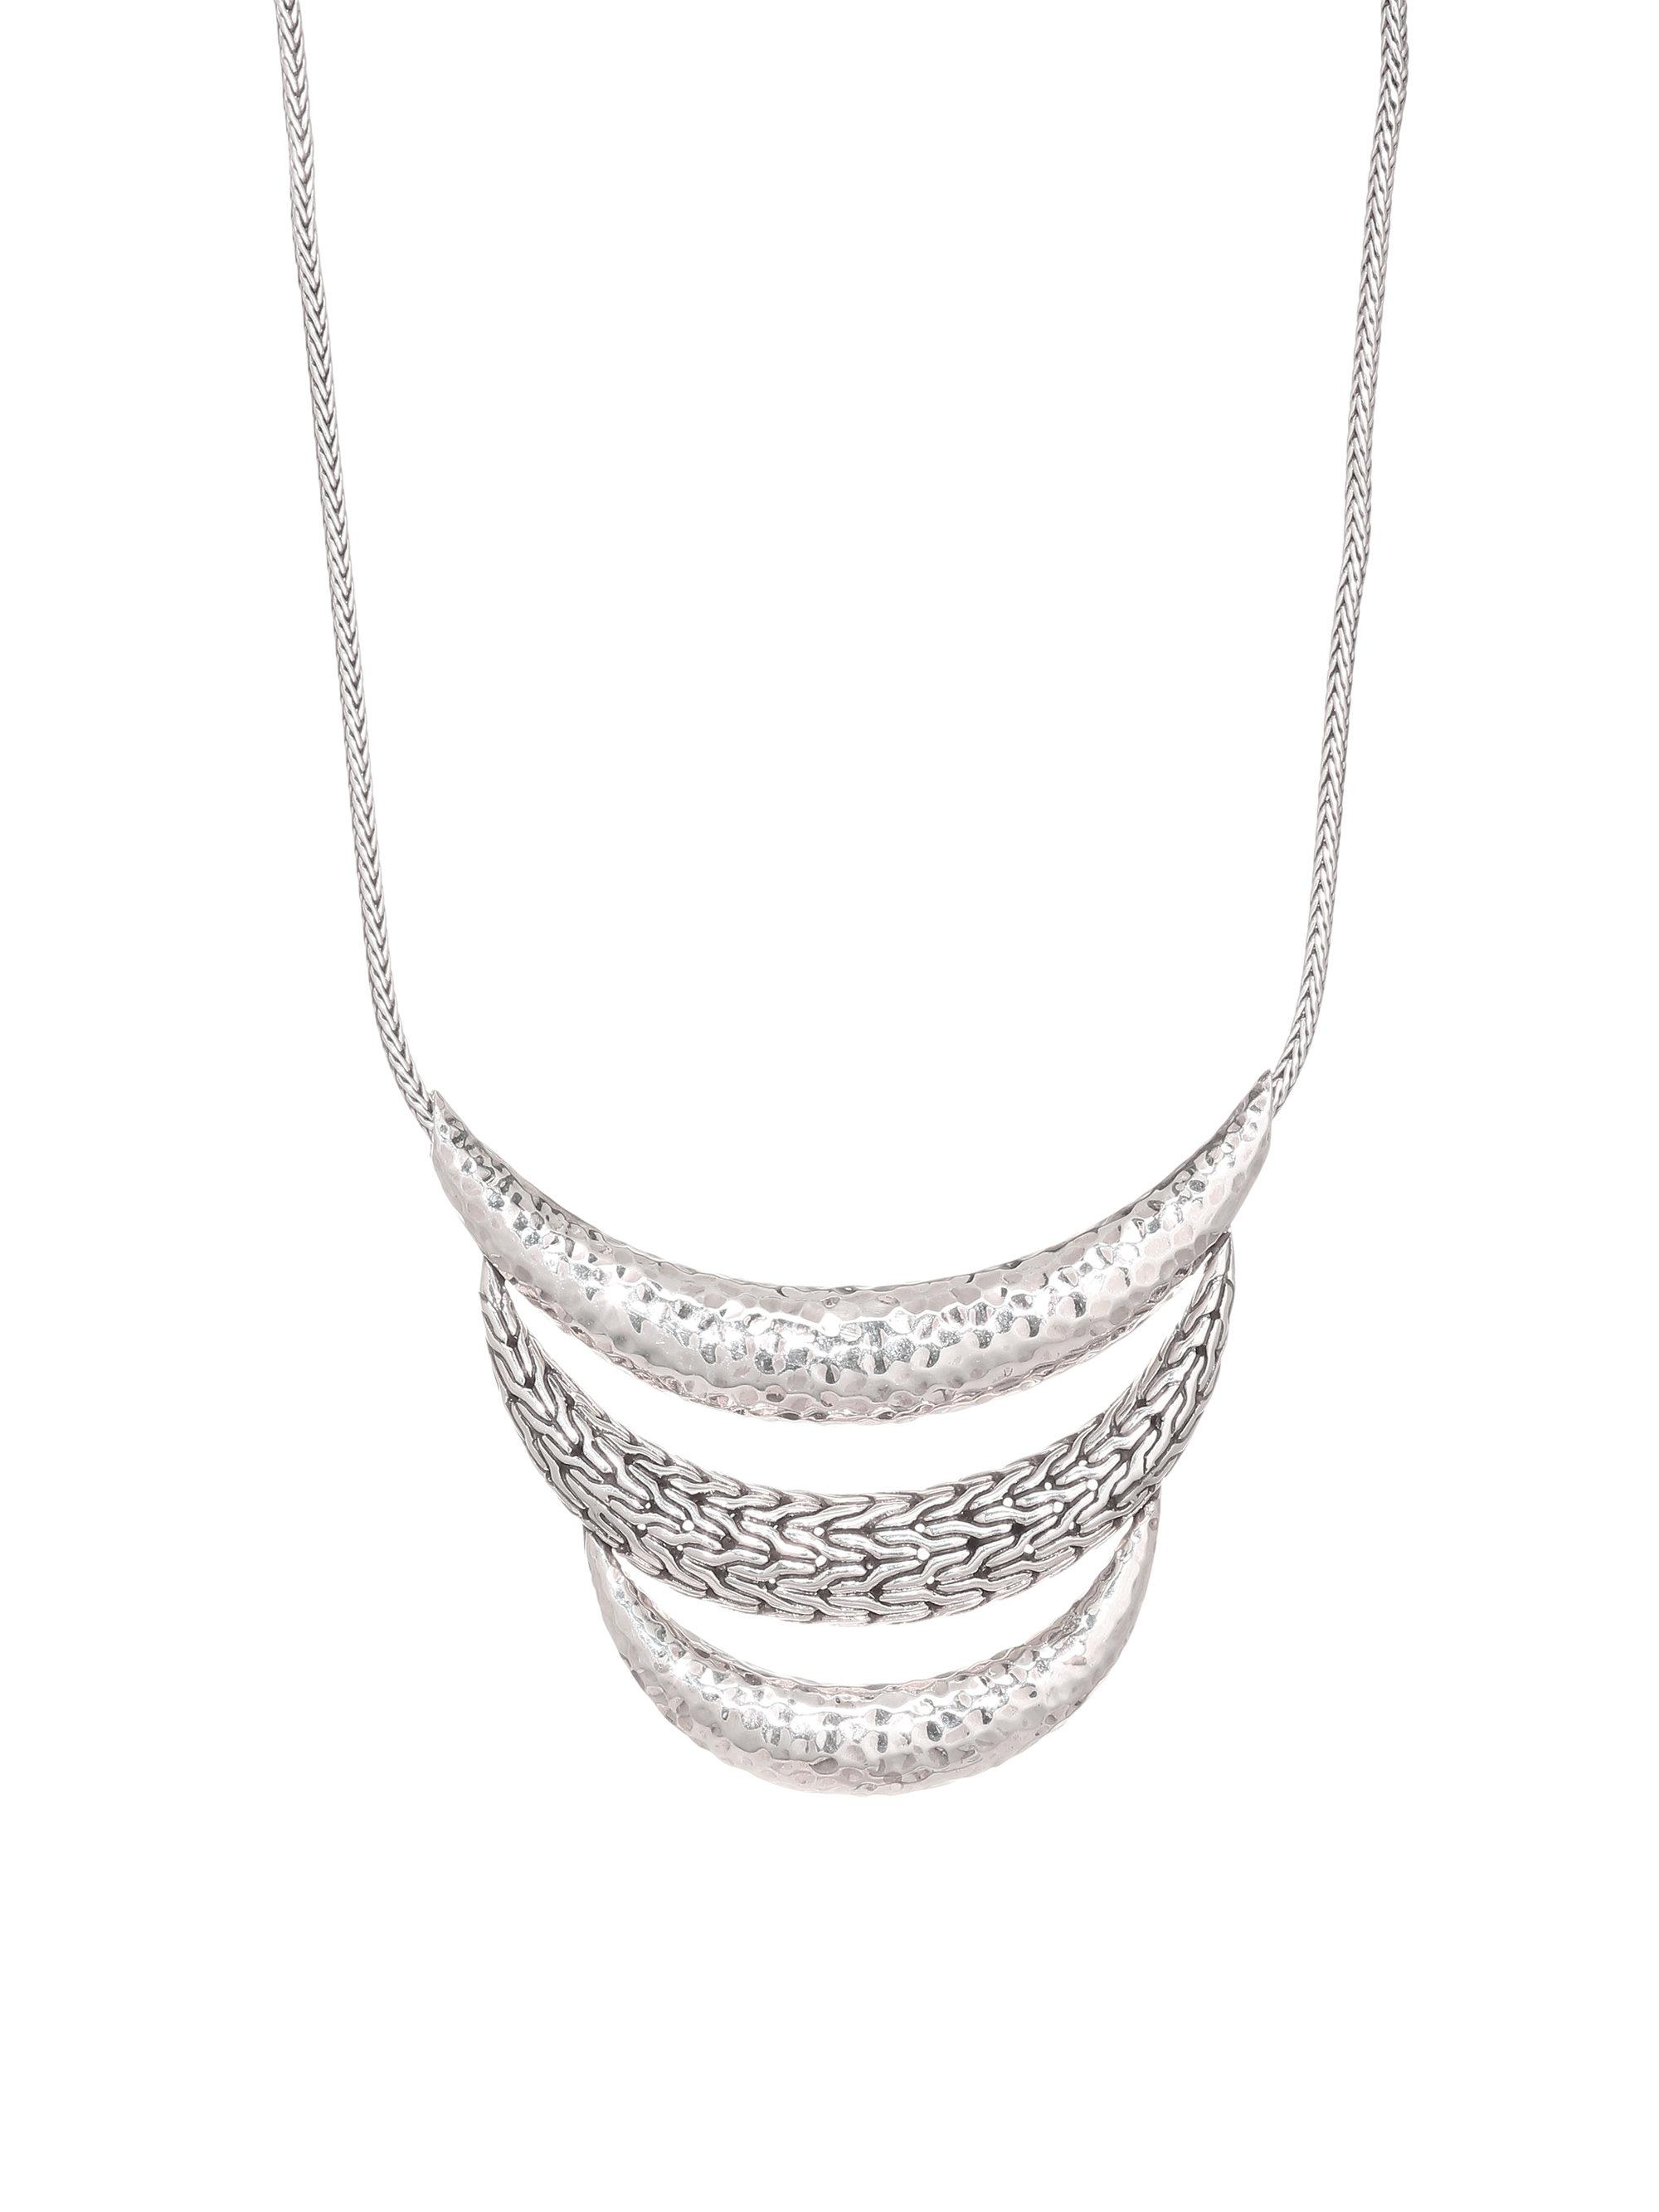 John Hardy Classic Chain Hammered Multi Row Necklace 8dyt1Flv1v